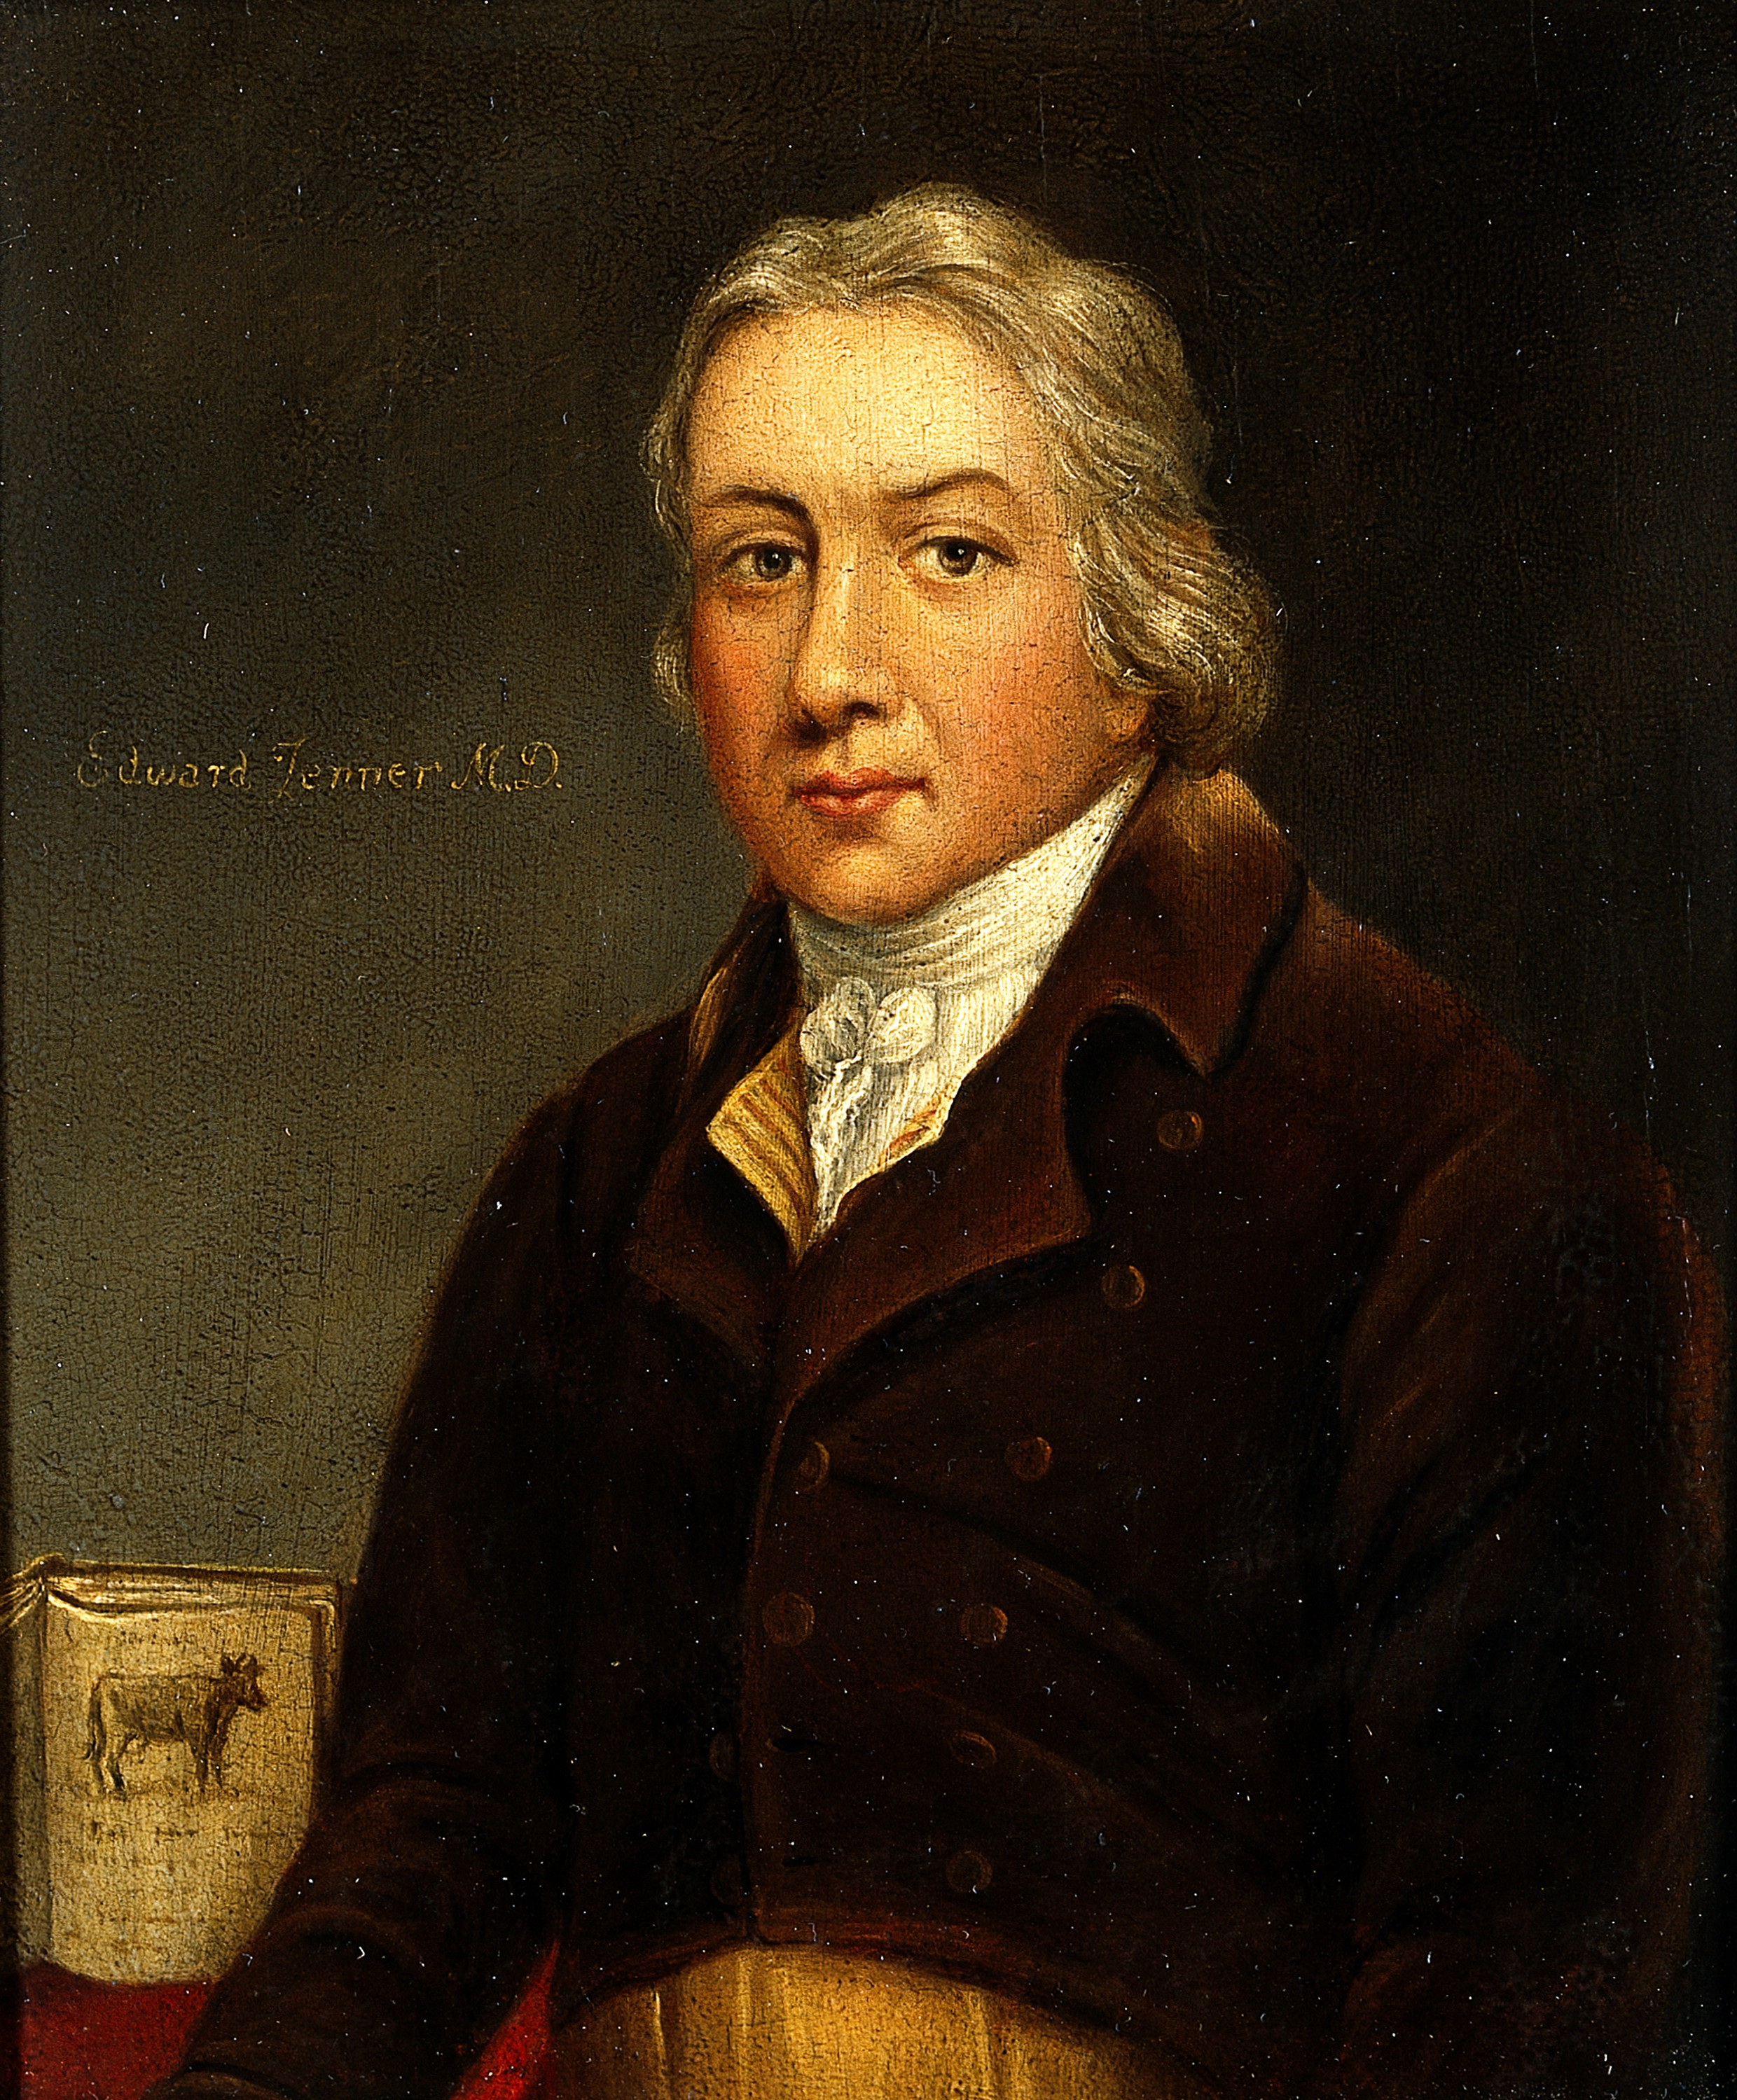 V0023503 Edward Jenner. Oil painting.